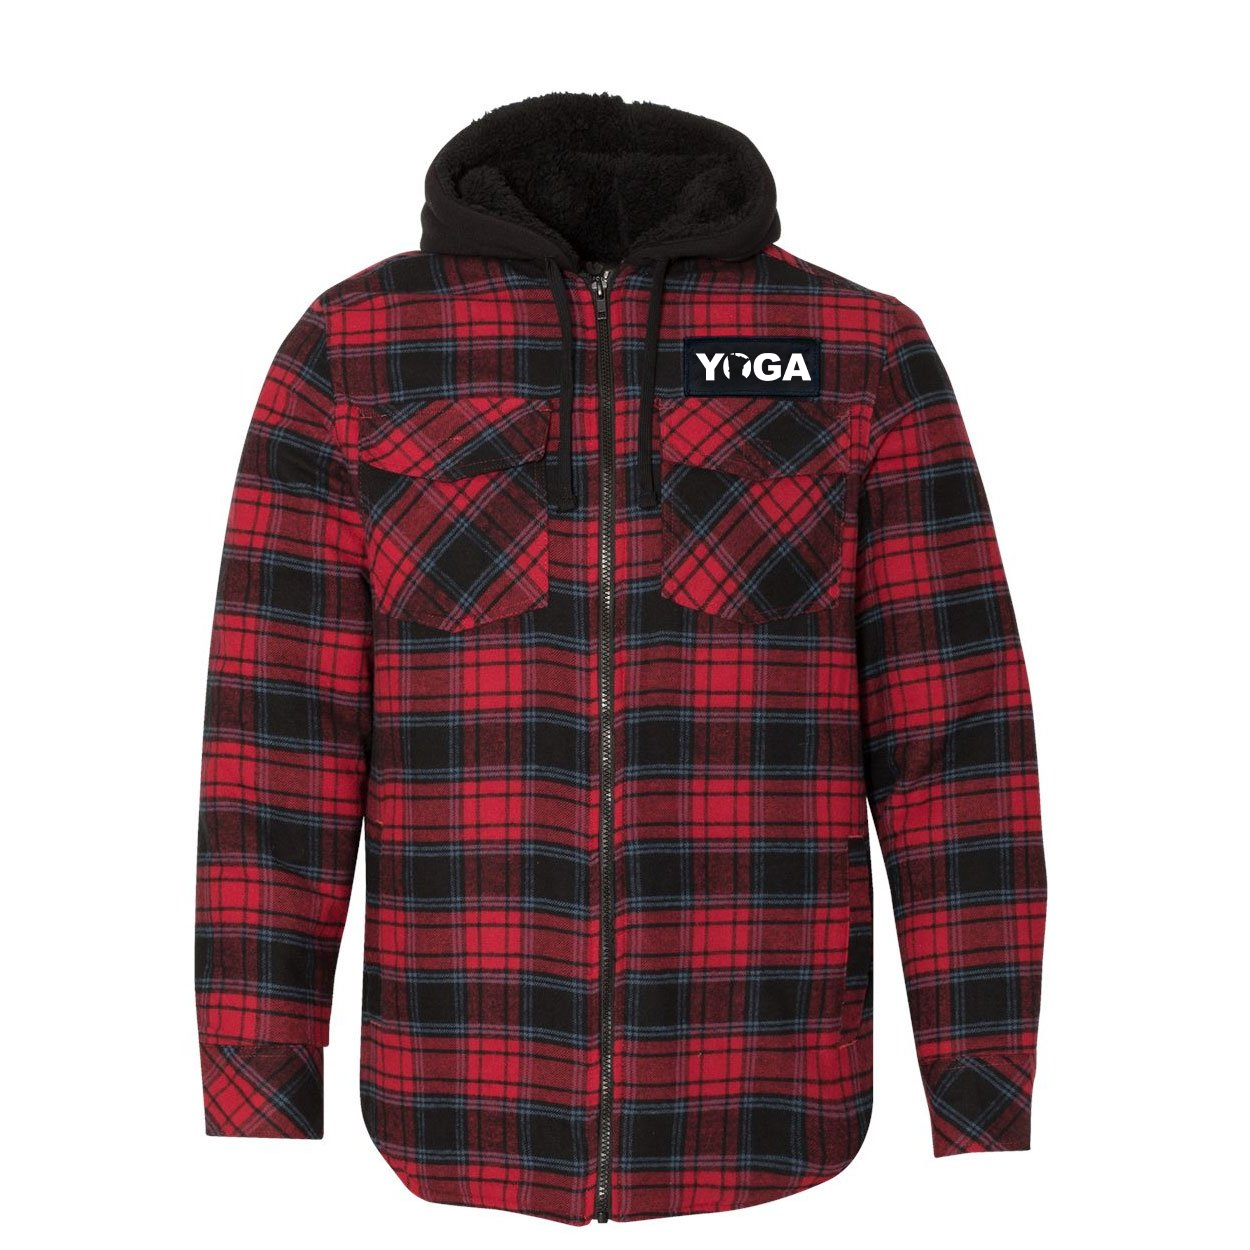 Yoga Minnesota Classic Unisex Full Zip Woven Patch Hooded Flannel Jacket Red/Black Buffalo (White Logo)